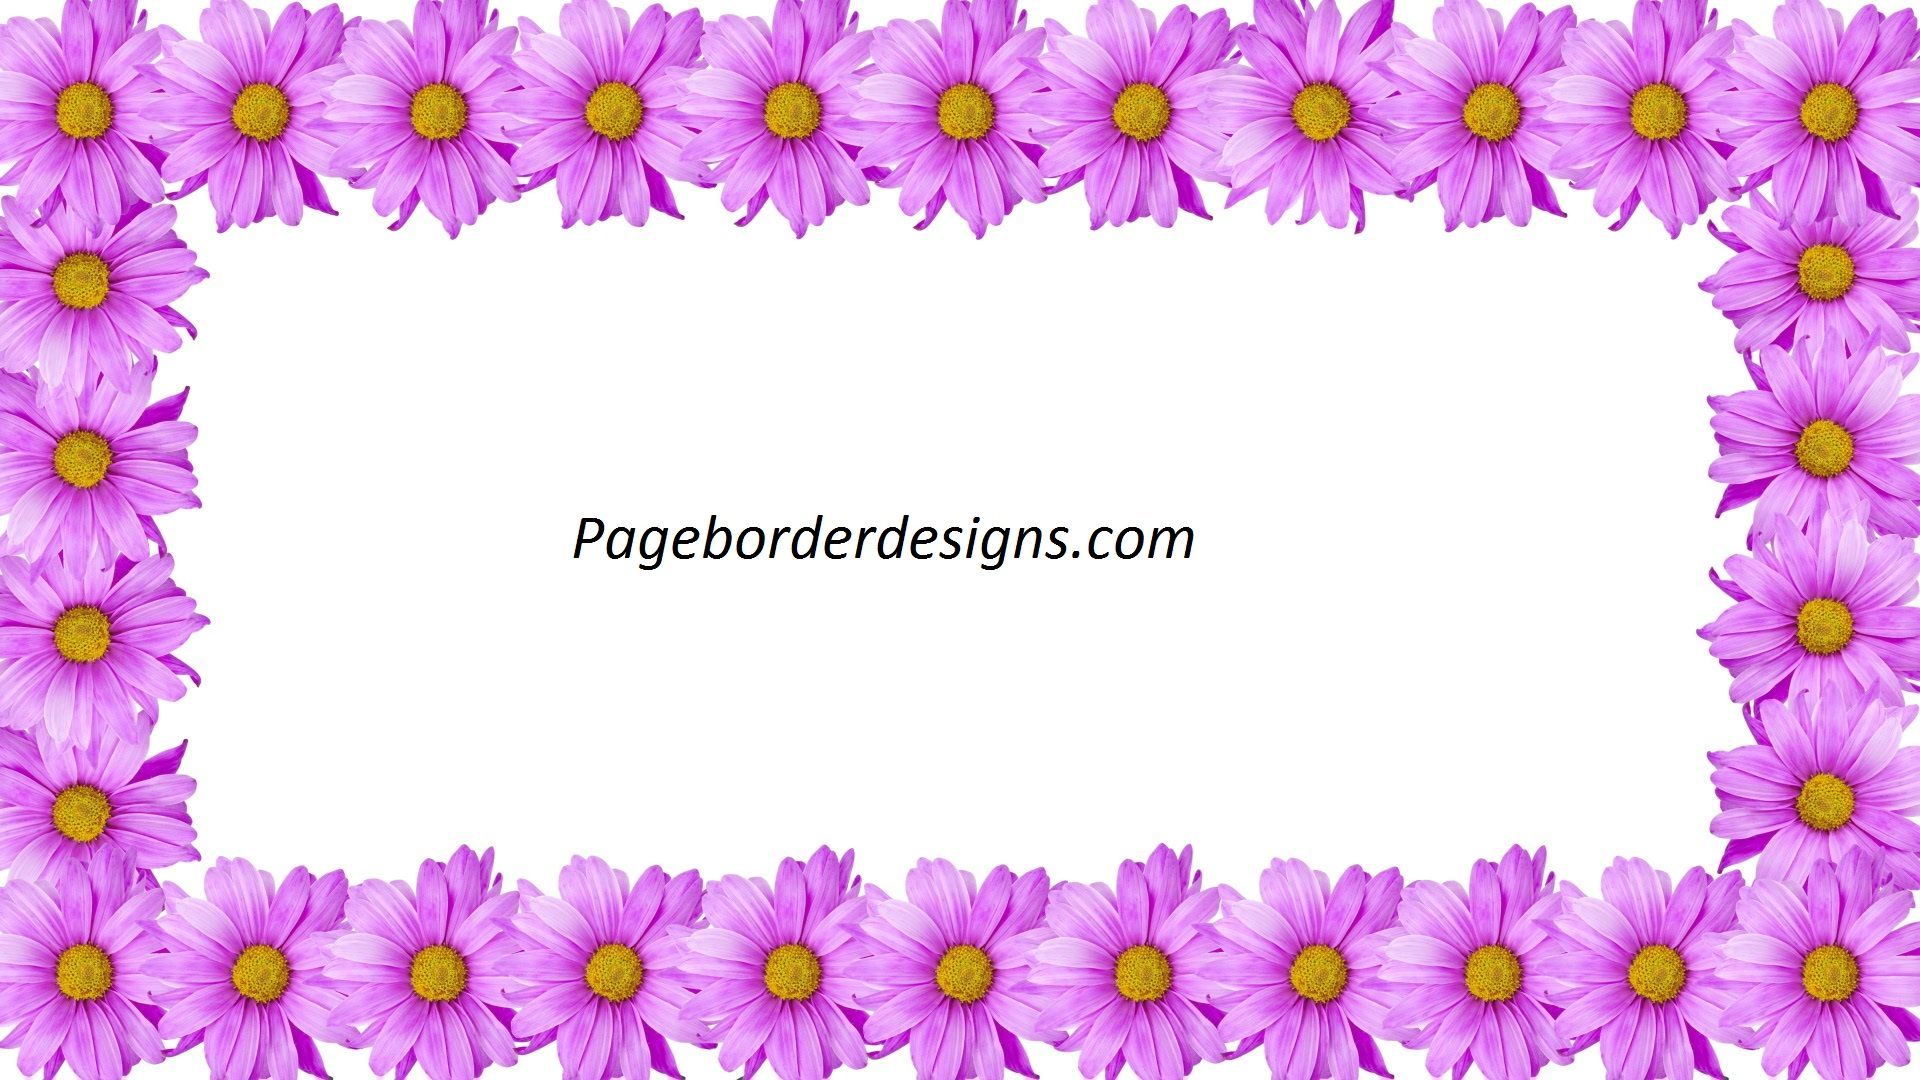 Beautiful Purple Flower Frames Border Design 2016 border design